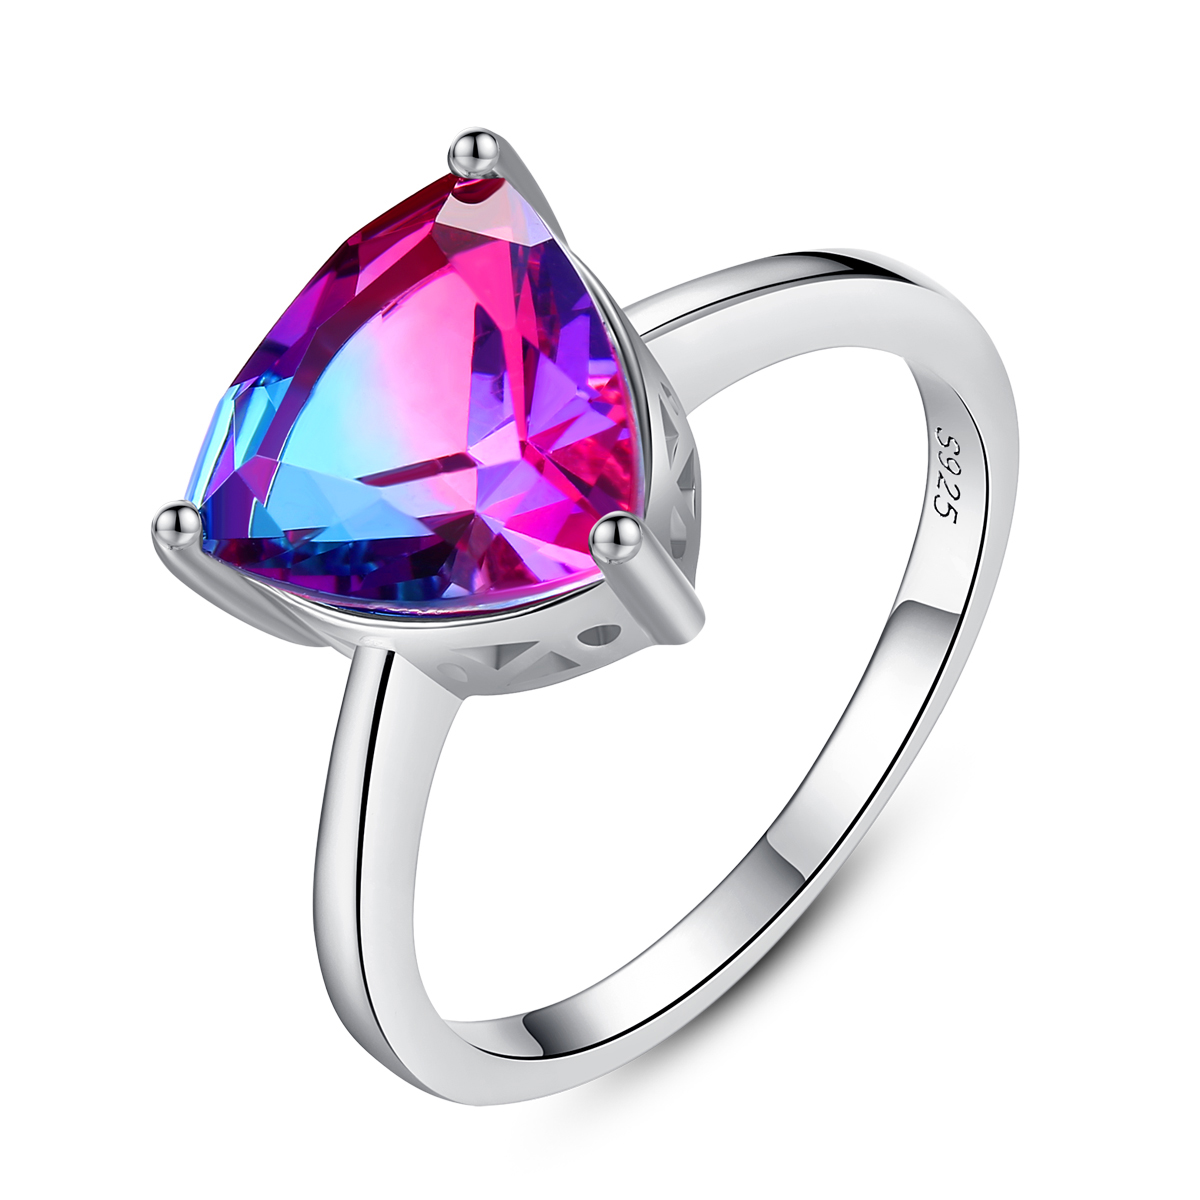 Allakalo Nature Rainbow Fire Mystic Topaz Gemstone Rings for Women Anniversary 925 Sterling Silver Engagement Wedding Anel AR022